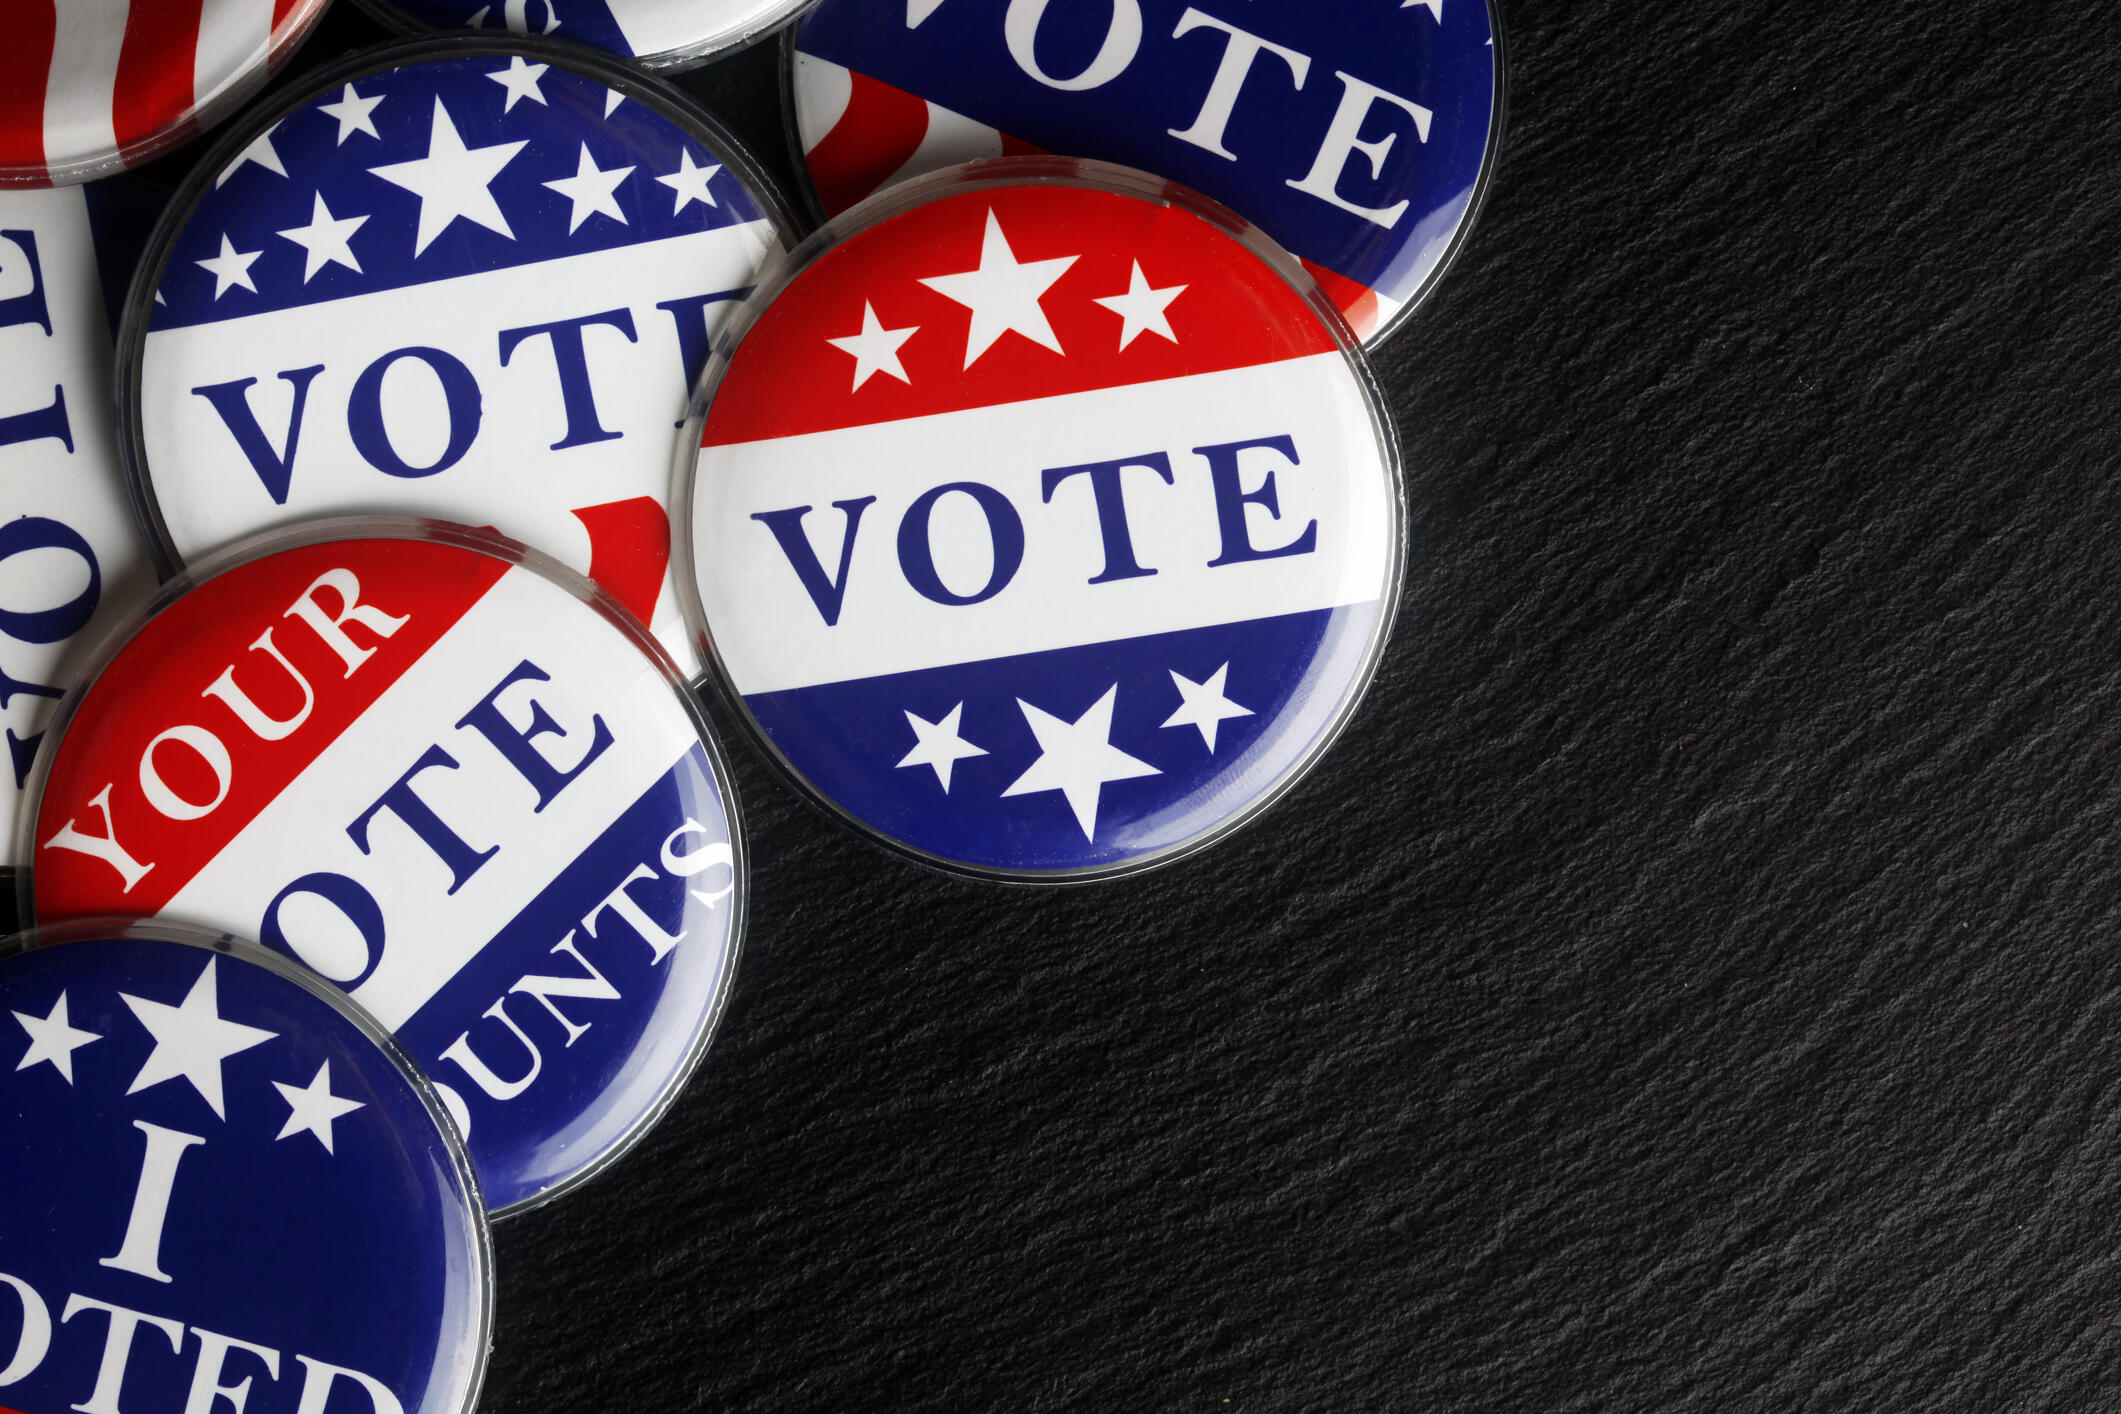 City council, school board candidate filing opens Monday in Iowa